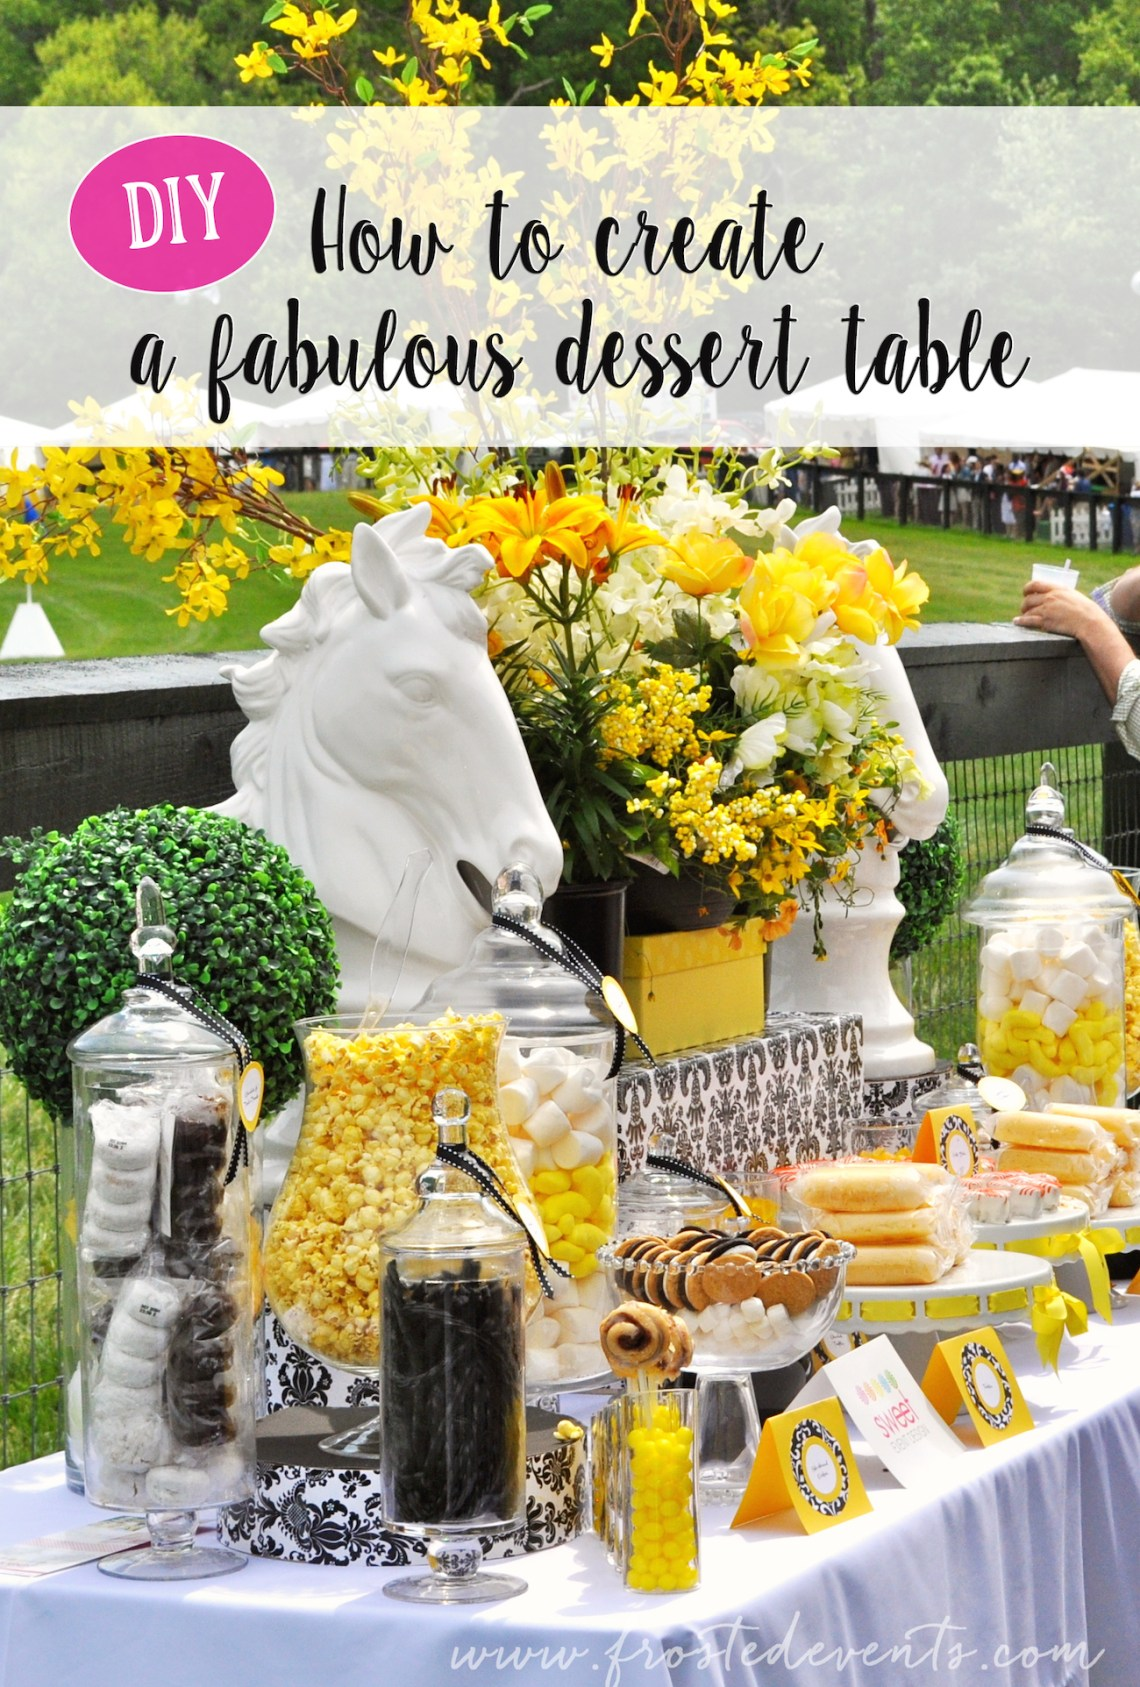 Diy dessert table for wedding or party dessert table candy buffet wedding ideas inspiration horse derby theme frostedevents desserttable candybuffet watchthetrailerfo